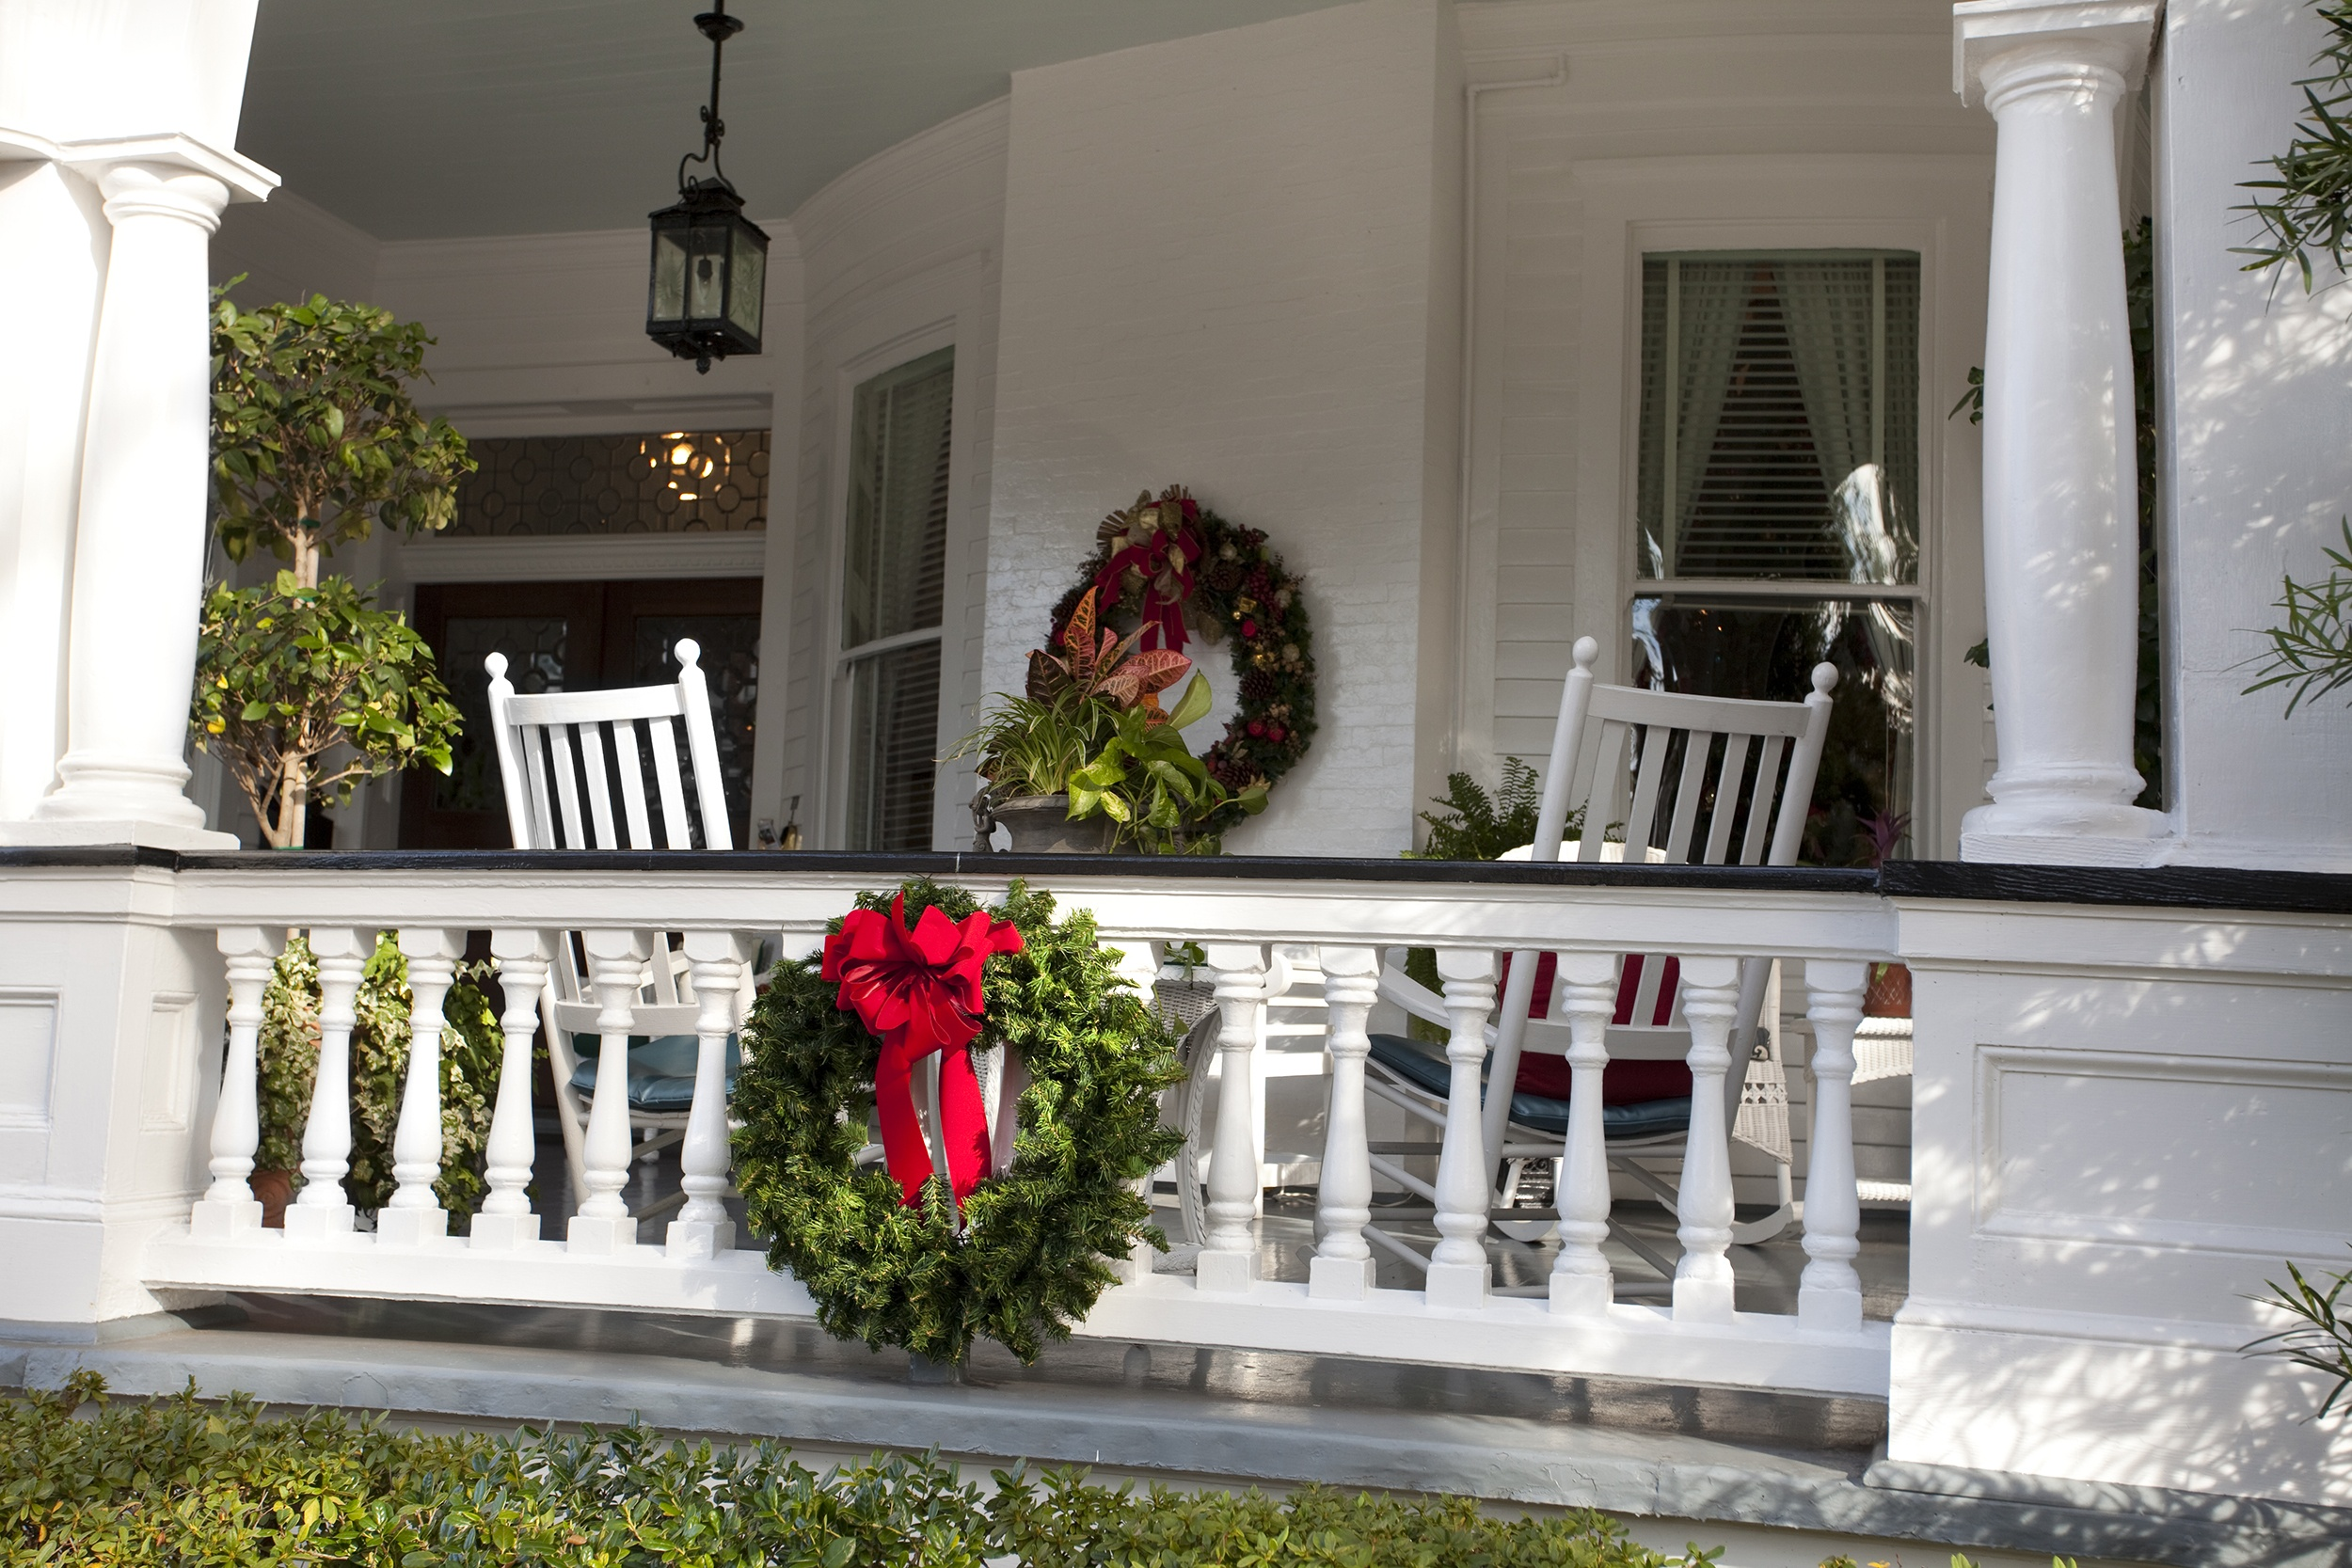 create a festive christmas porch with wreaths hanging along railings and down the staircase